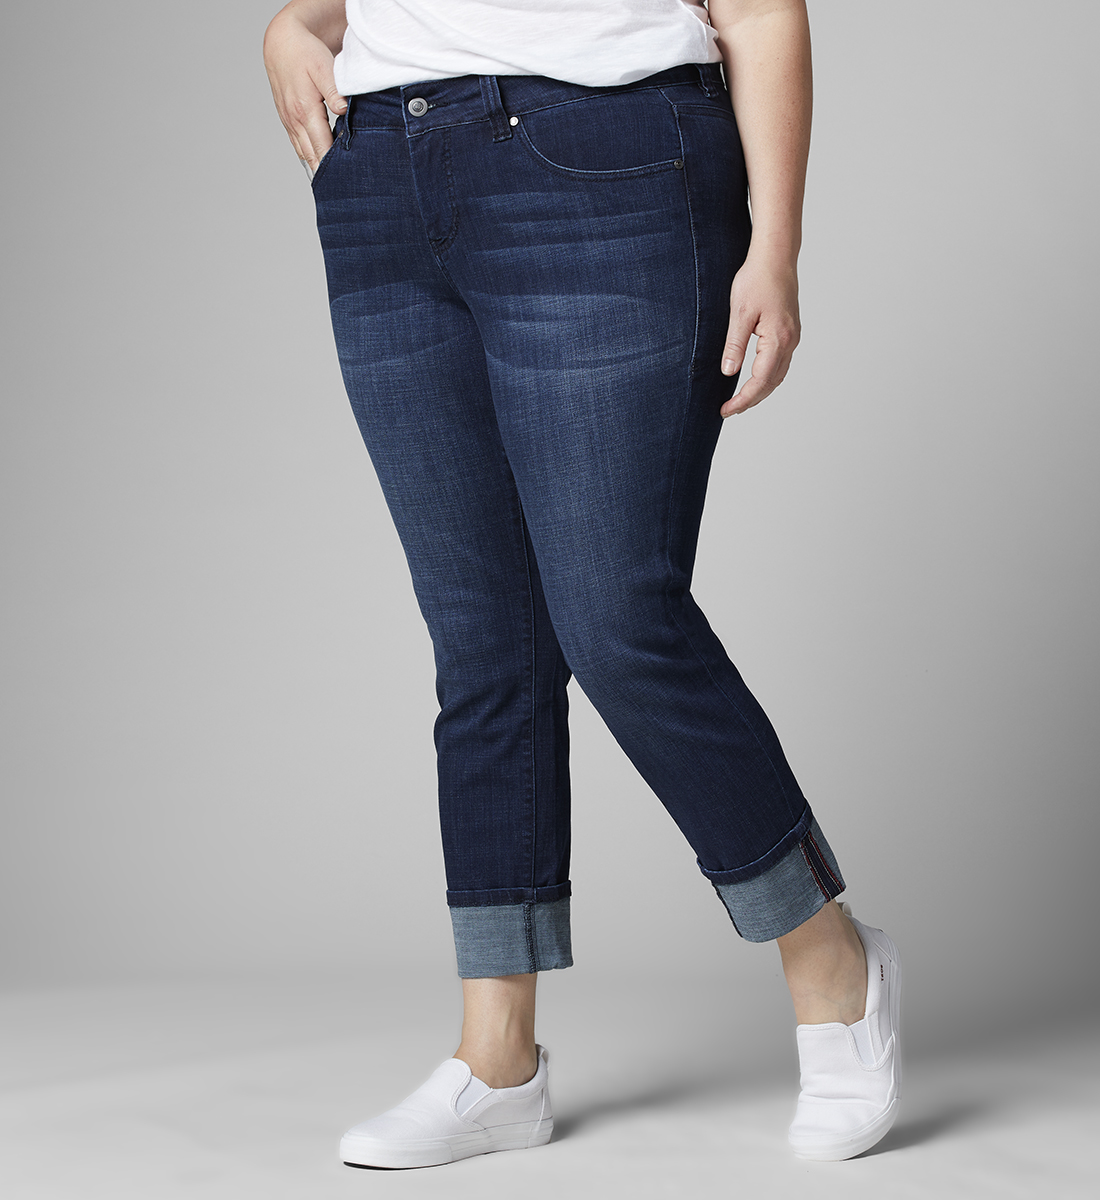 Maddie Mid Rise Skinny Cuffed Jeans Plus Size, , hi-res